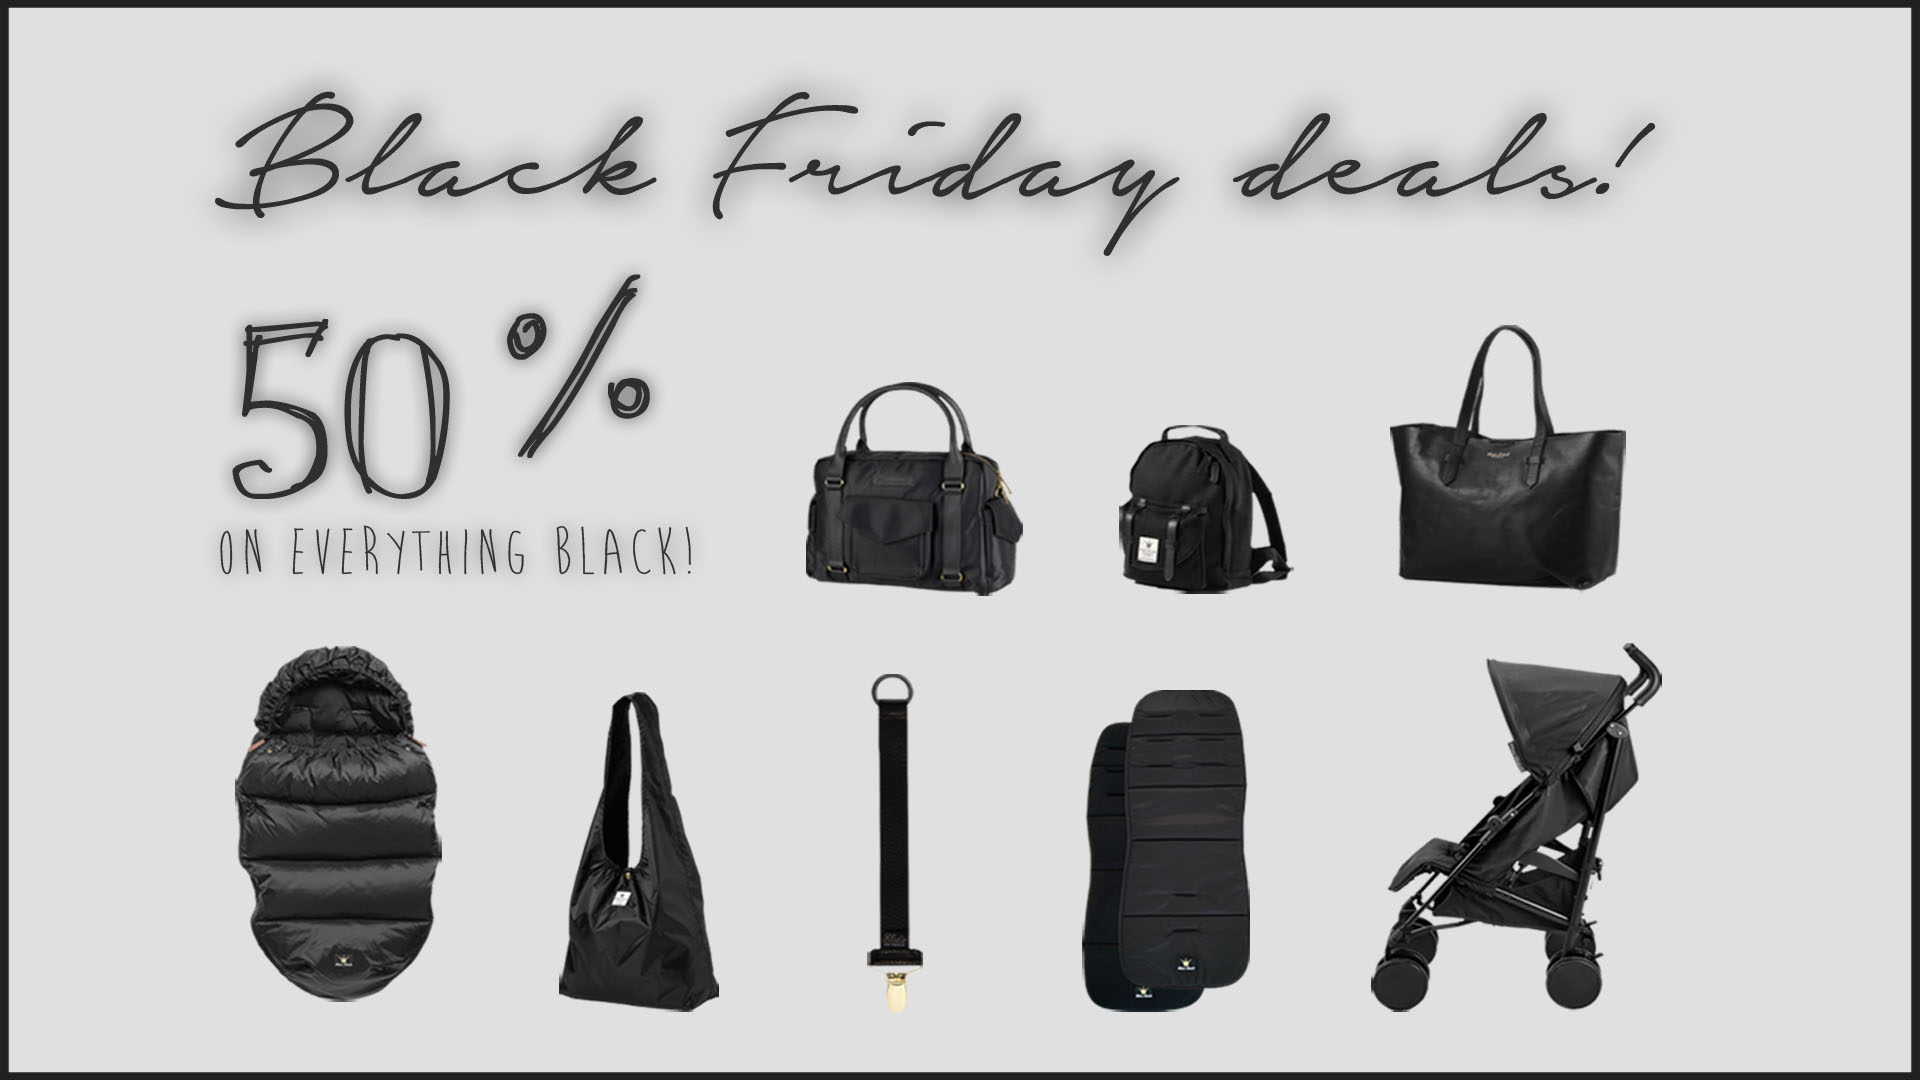 Elodie Details   48hour deal from midnight tonight. 50% off all Black items in their range.